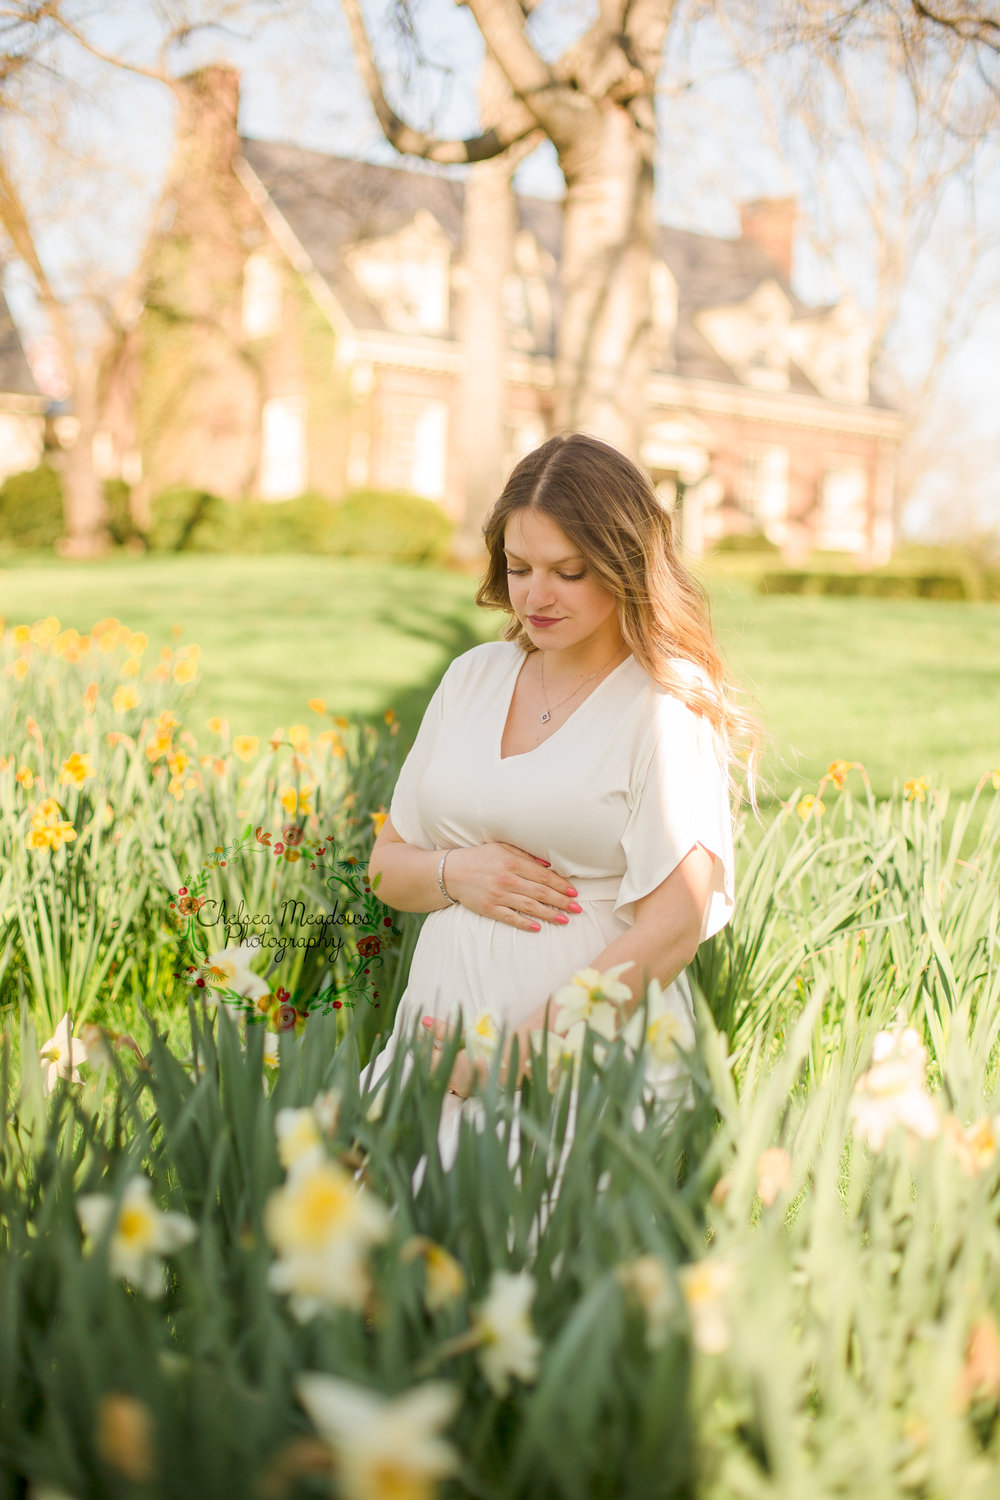 Nicole Spring Maternity Session - Nashville Maternity Photographer - Chelsea Meadows Photography (42)_edited-1.jpg